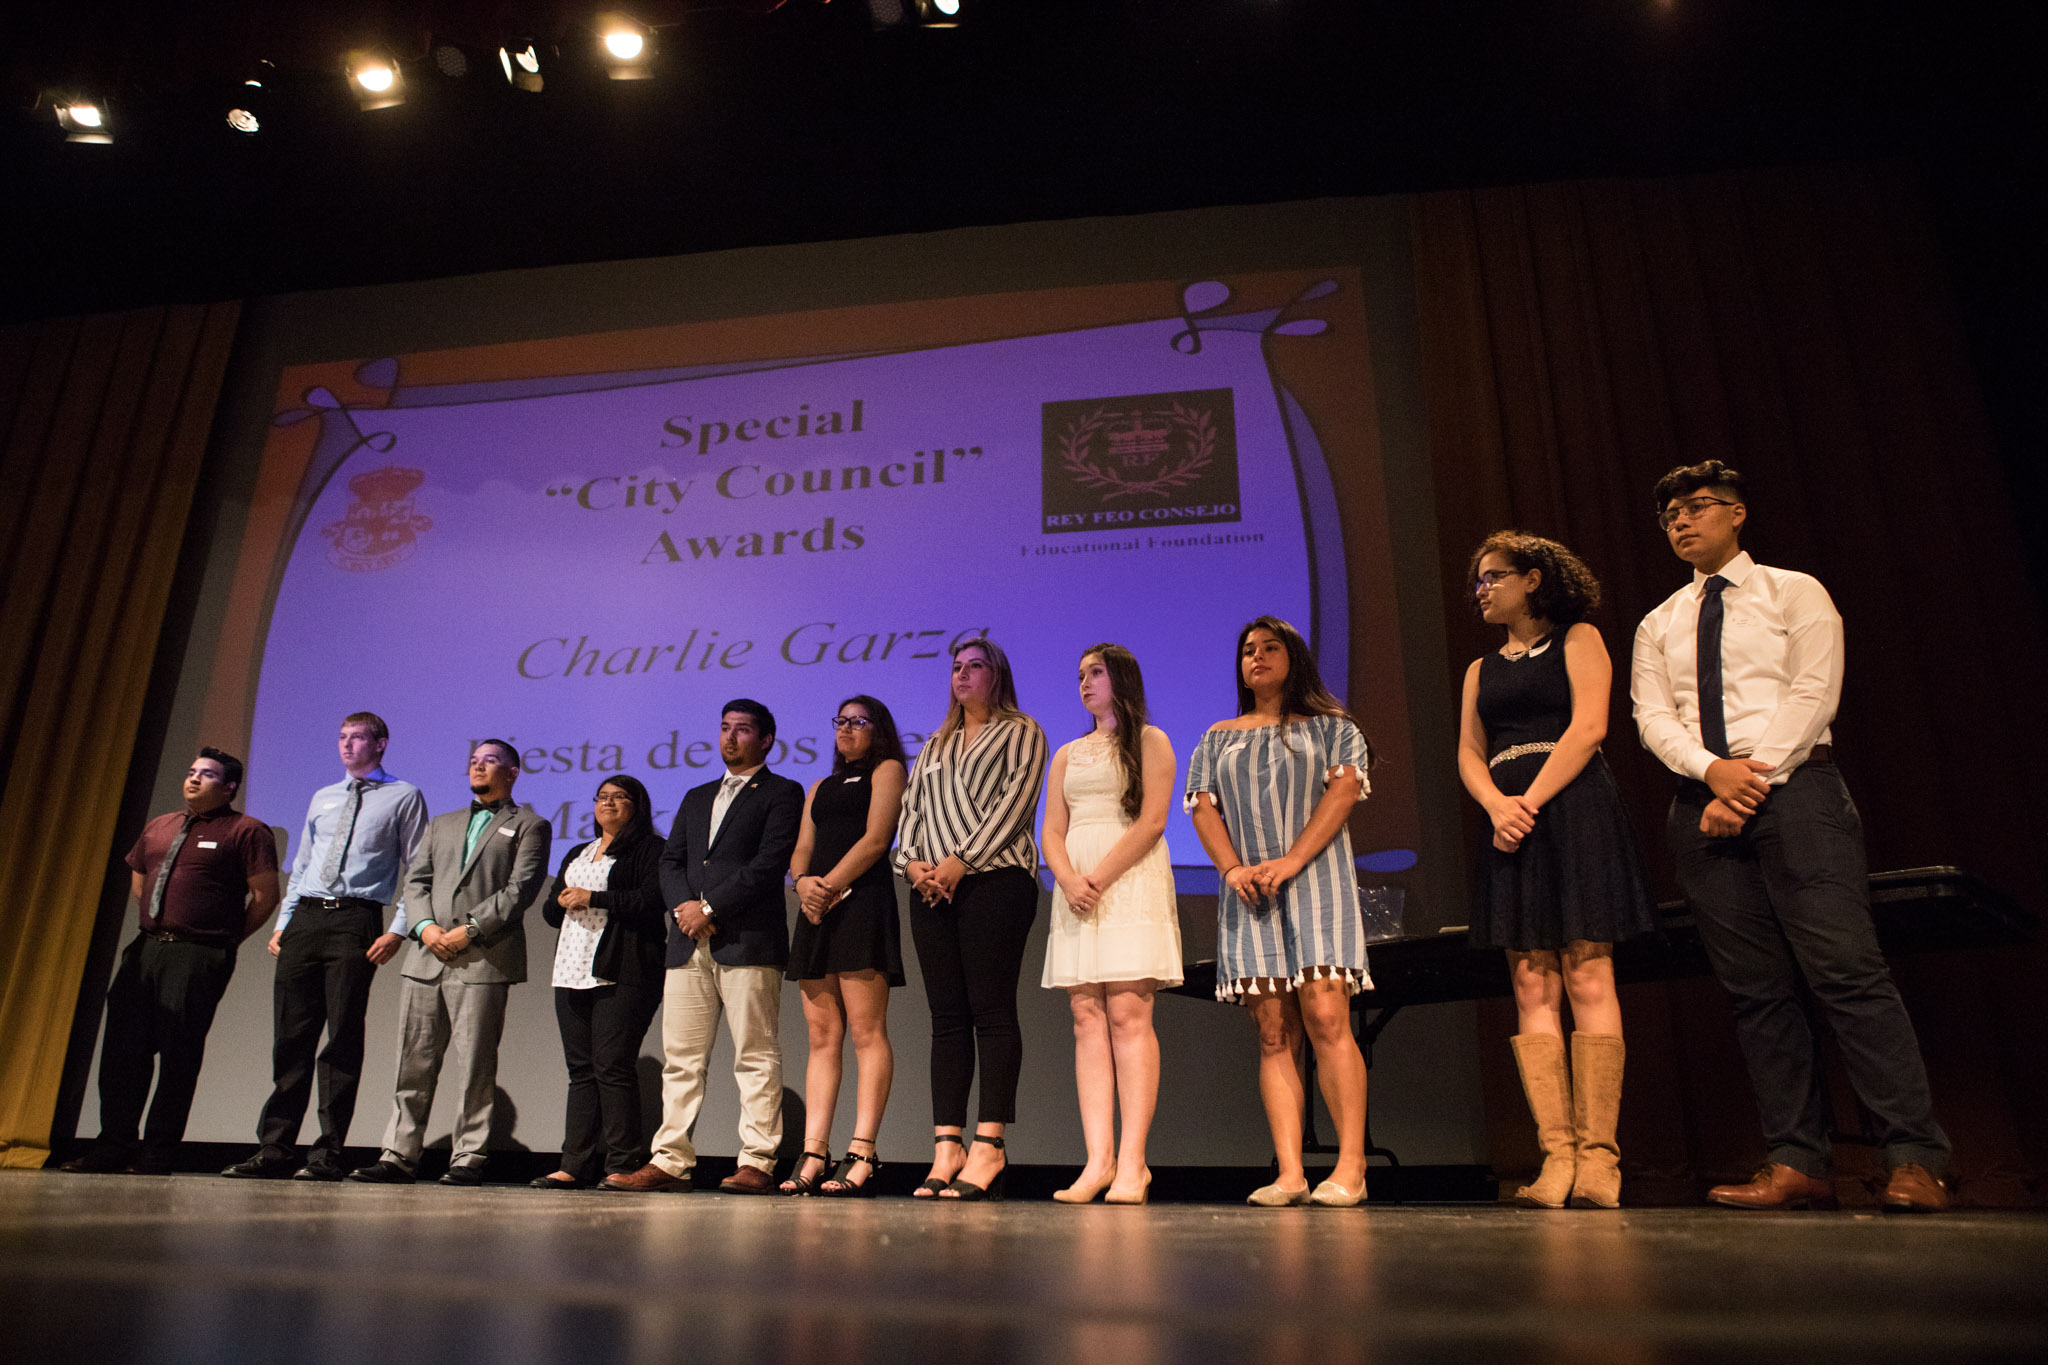 """Scholarship recipients representing the Special """"City Council"""" Awards stand on stage at the Rey Feo Scholarship Awards Ceremony."""